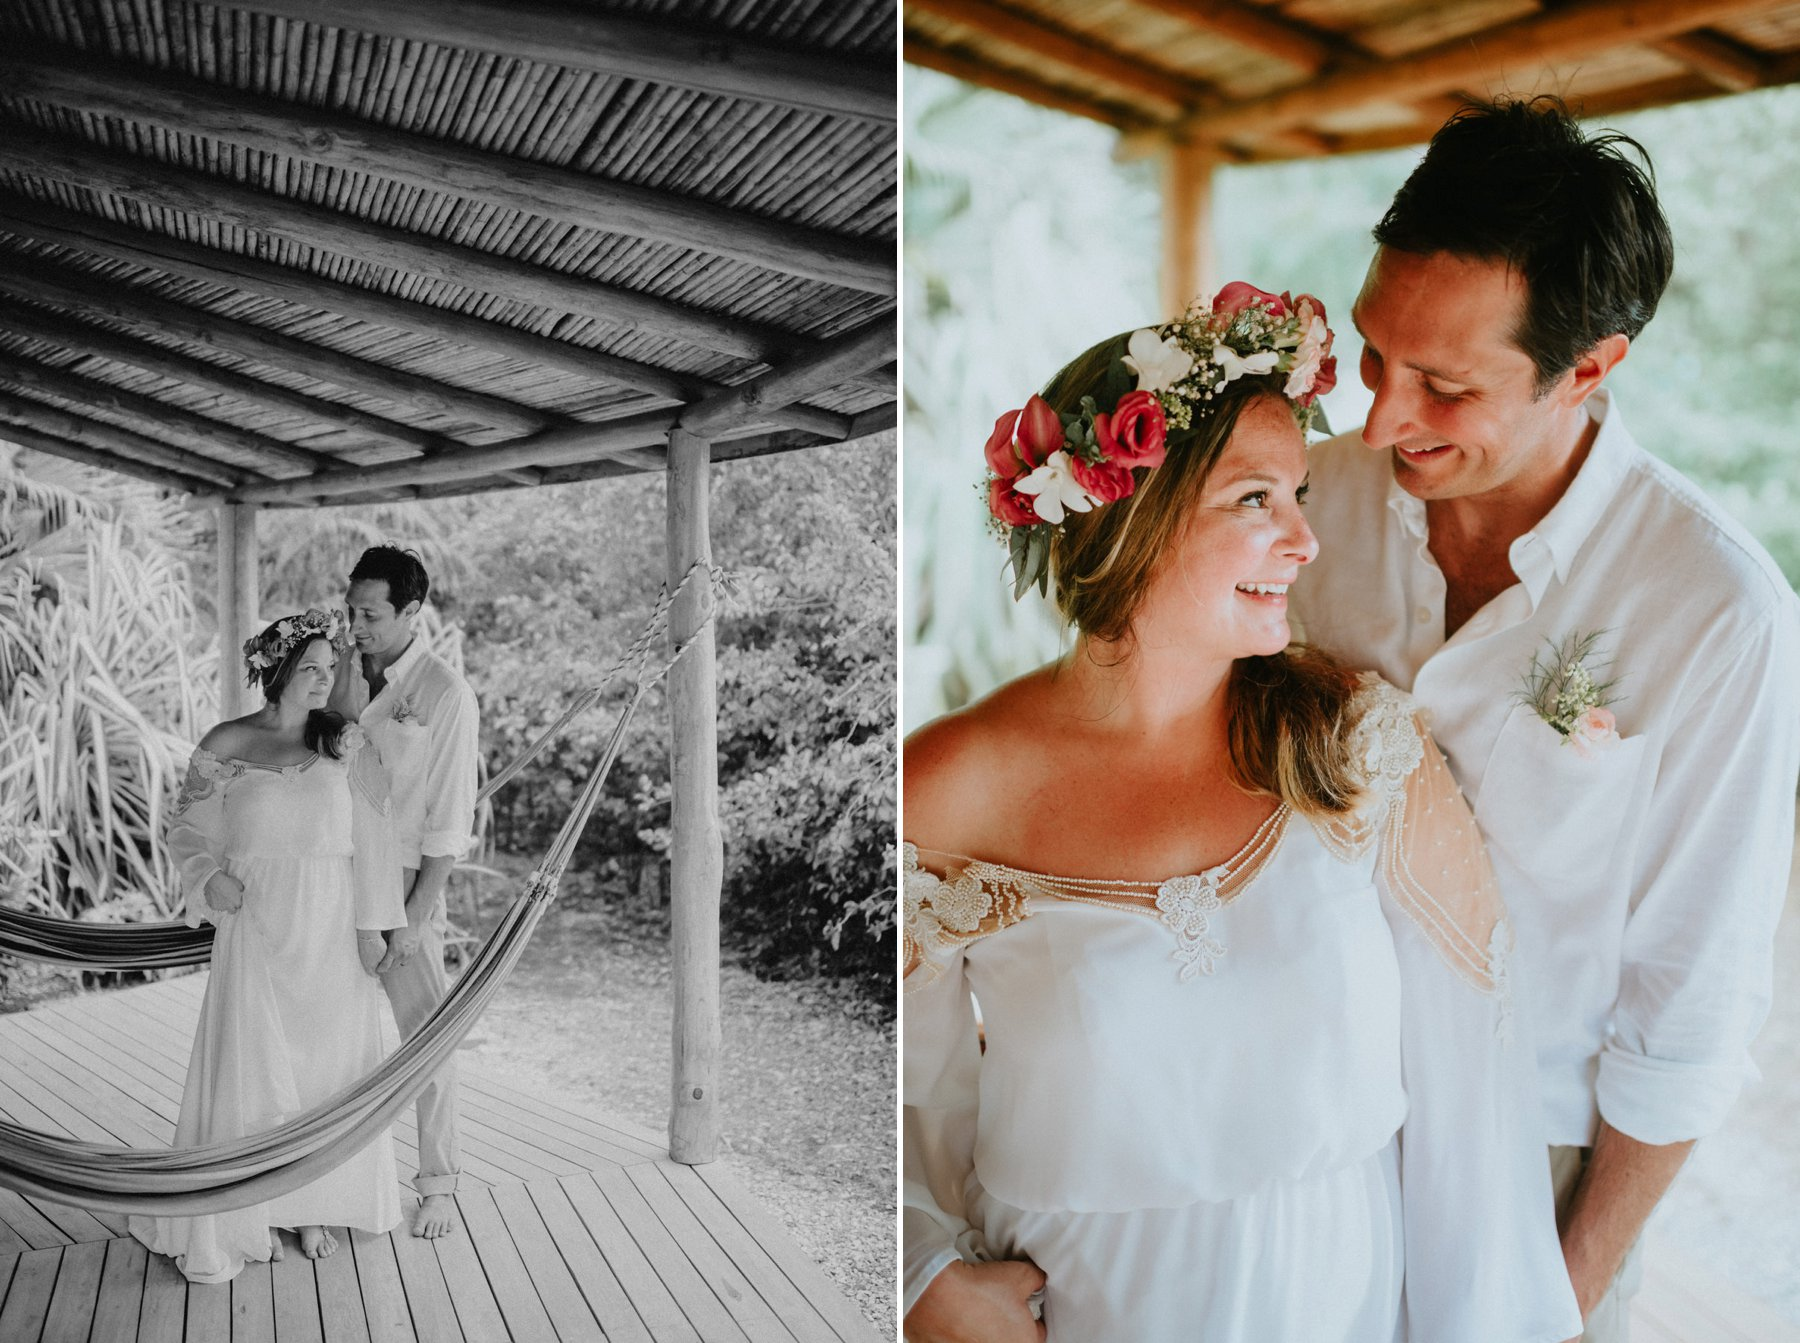 playa-negra-costa-rica-wedding-photographer-83.jpg